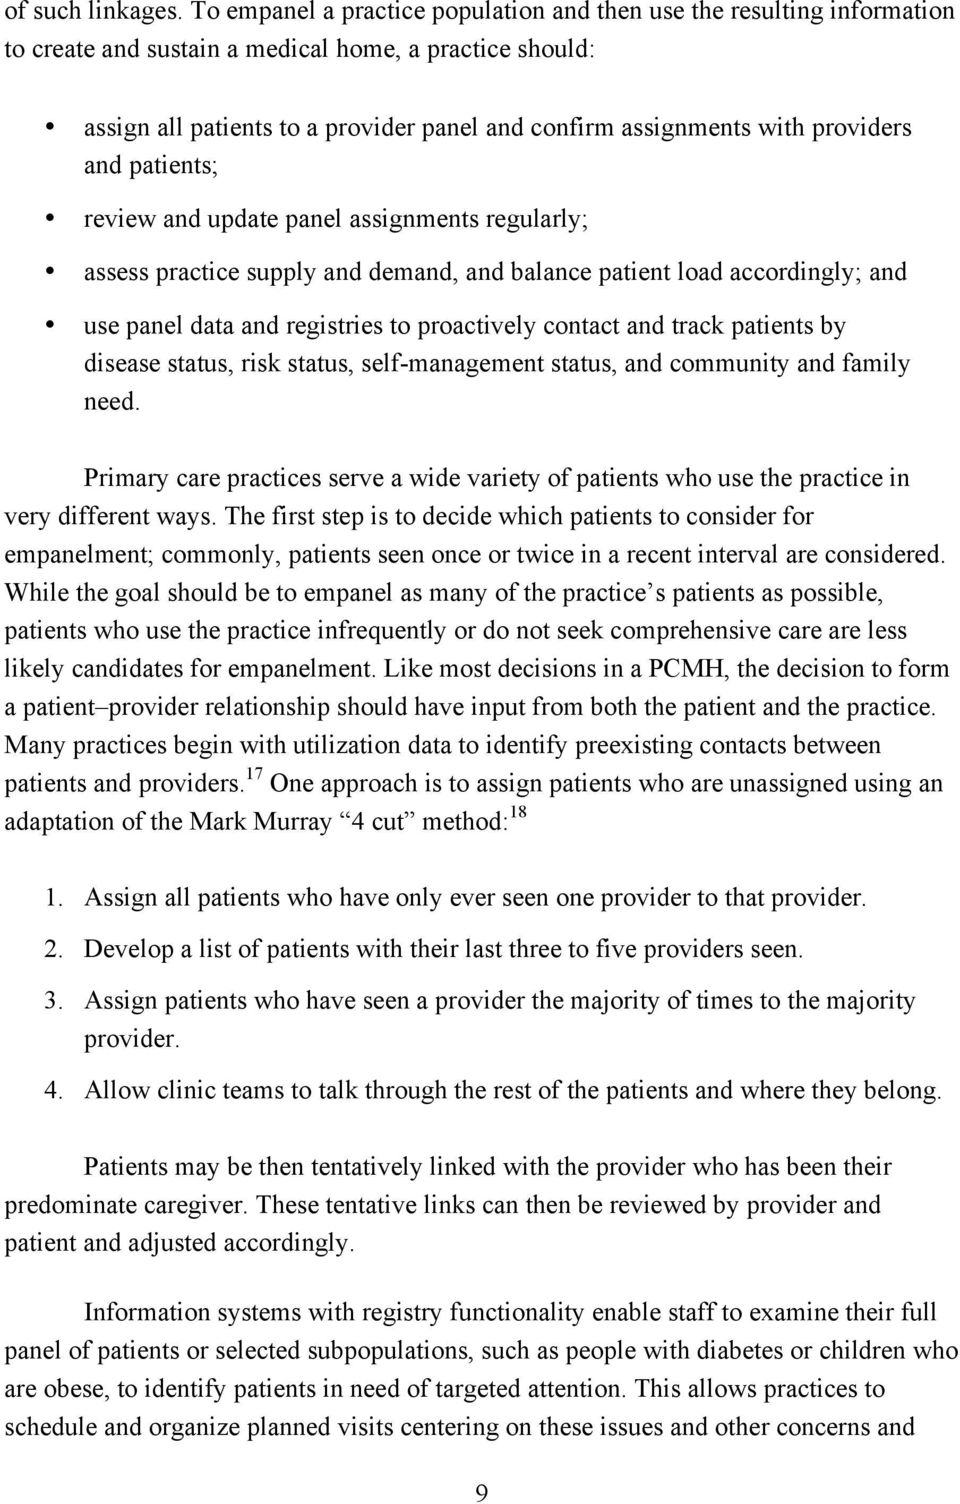 providers and patients; review and update panel assignments regularly; assess practice supply and demand, and balance patient load accordingly; and use panel data and registries to proactively